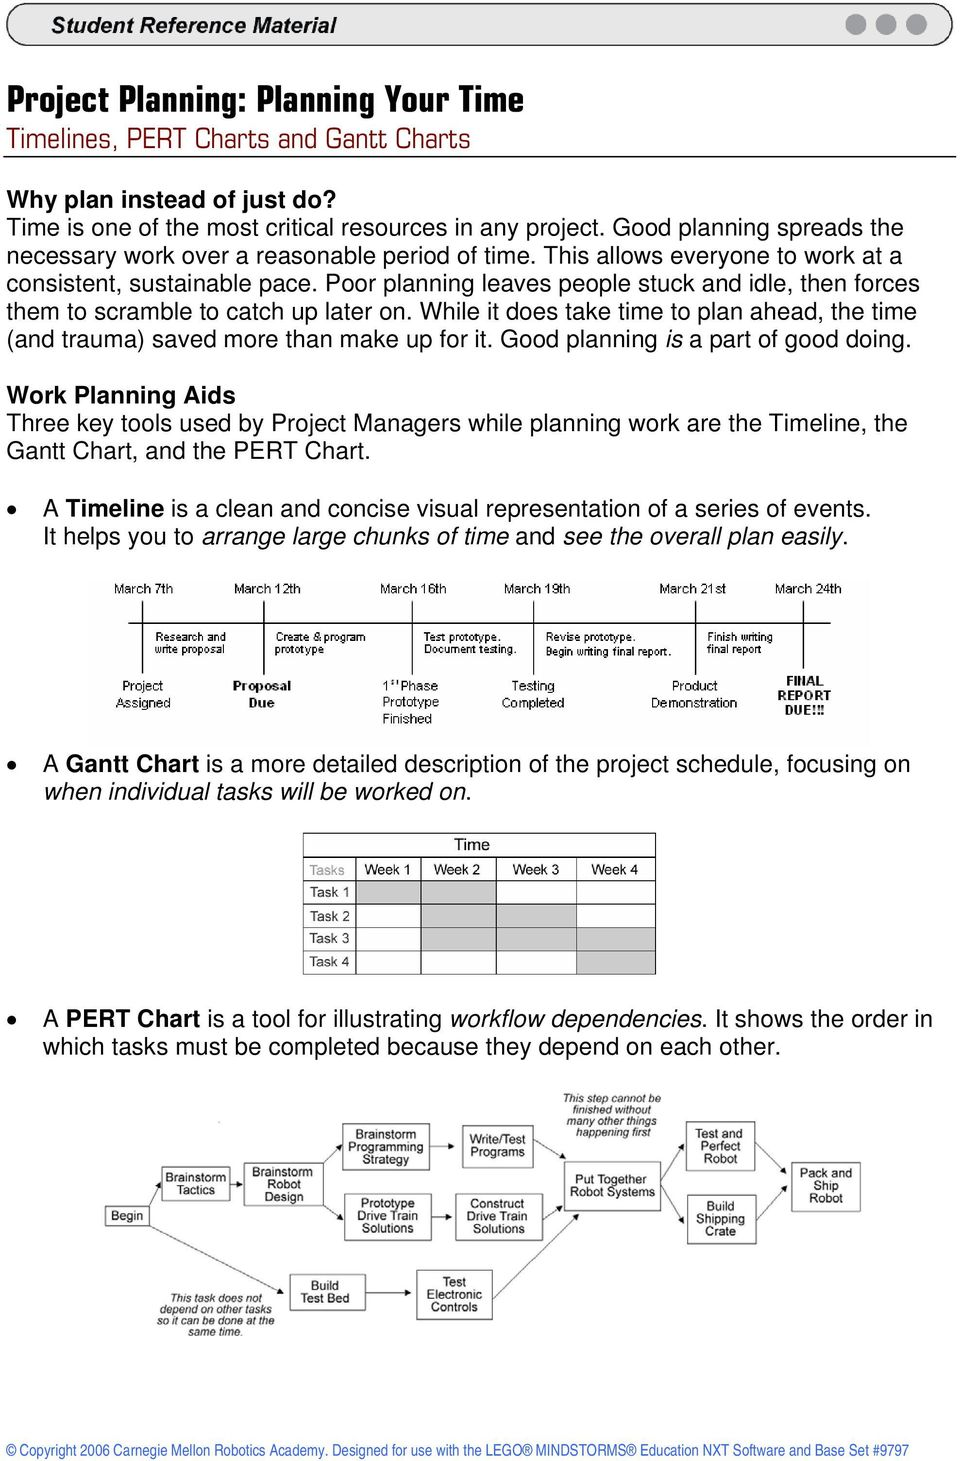 Project Planning Planning Your Time Timelines Pert Charts And